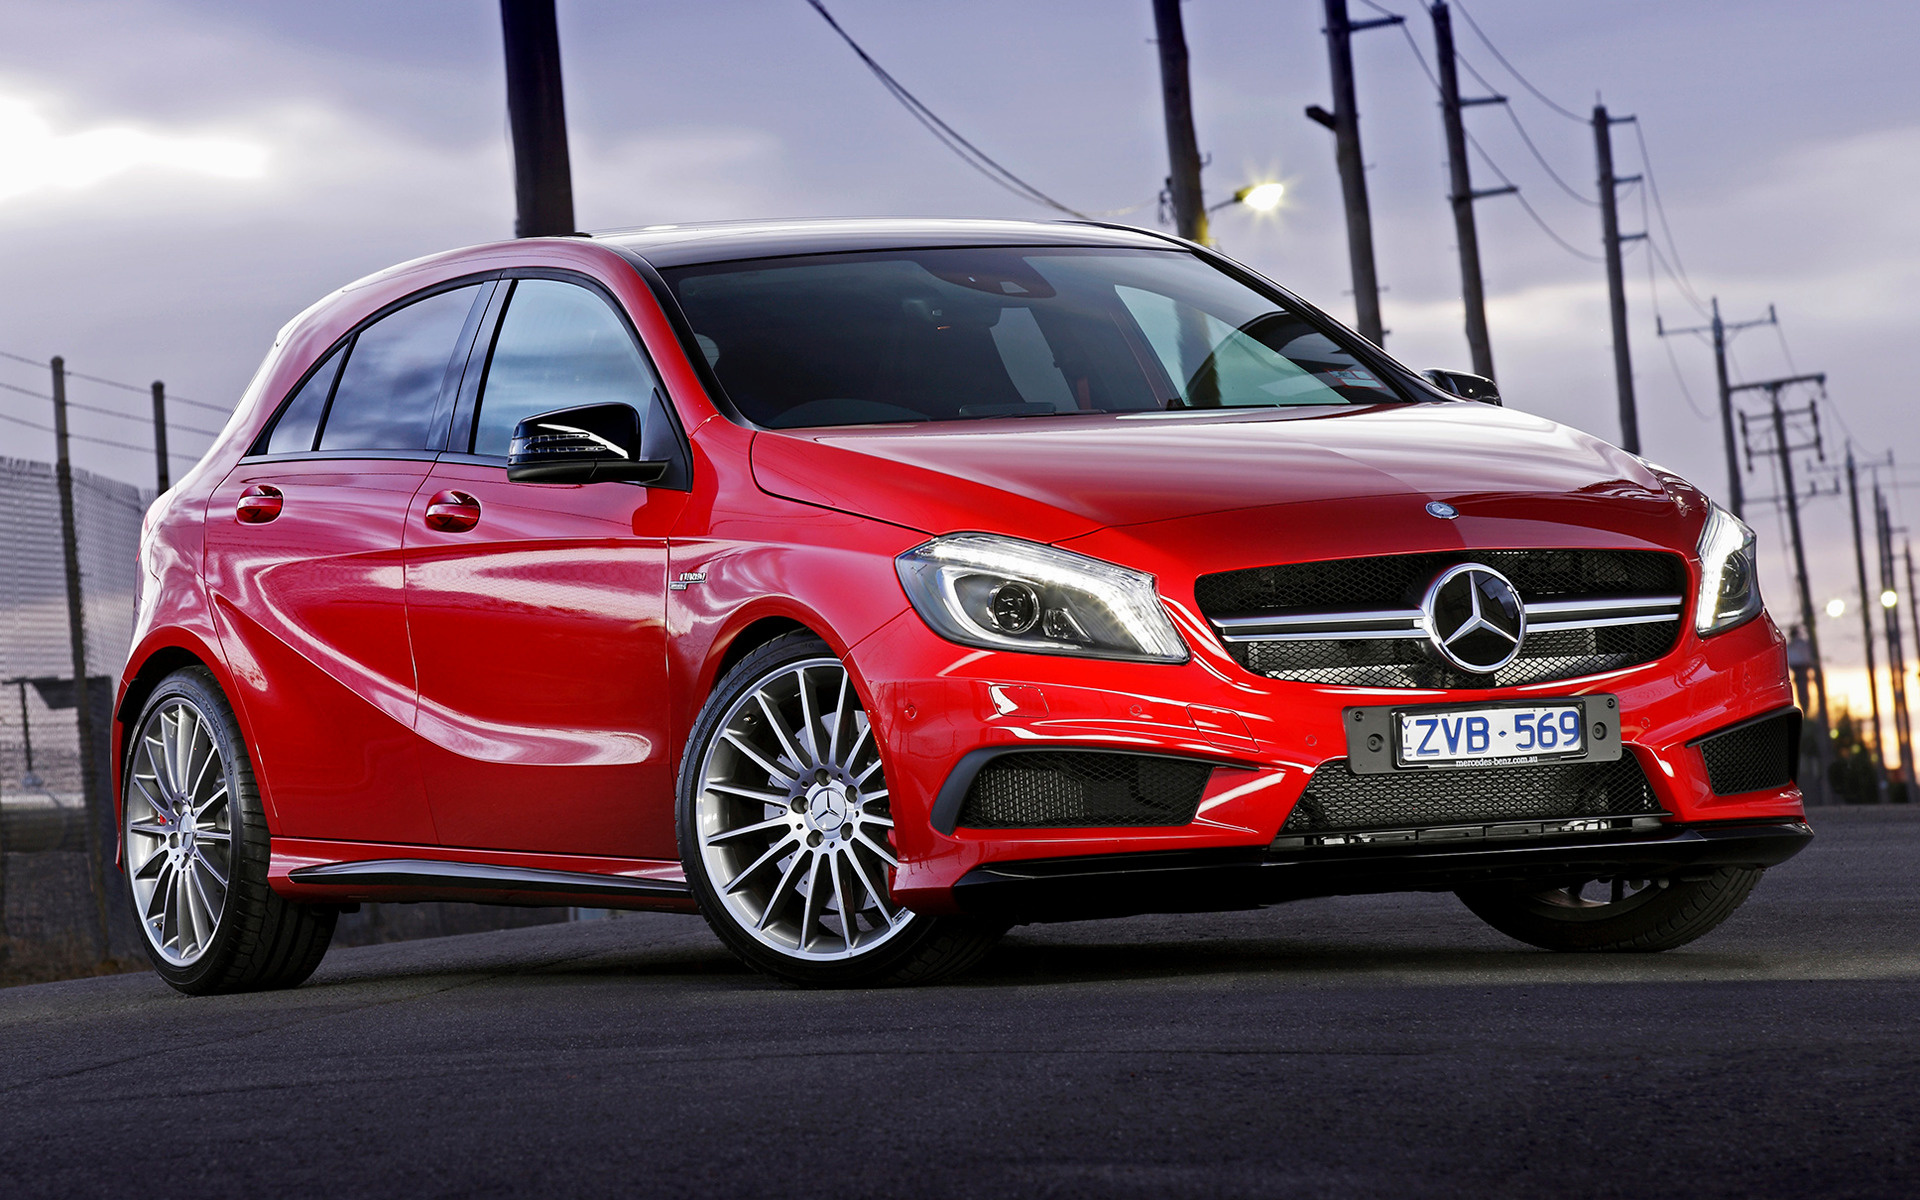 Mercedes Benz Amg >> 2013 Mercedes-Benz A 45 AMG (AU) - Wallpapers and HD ...